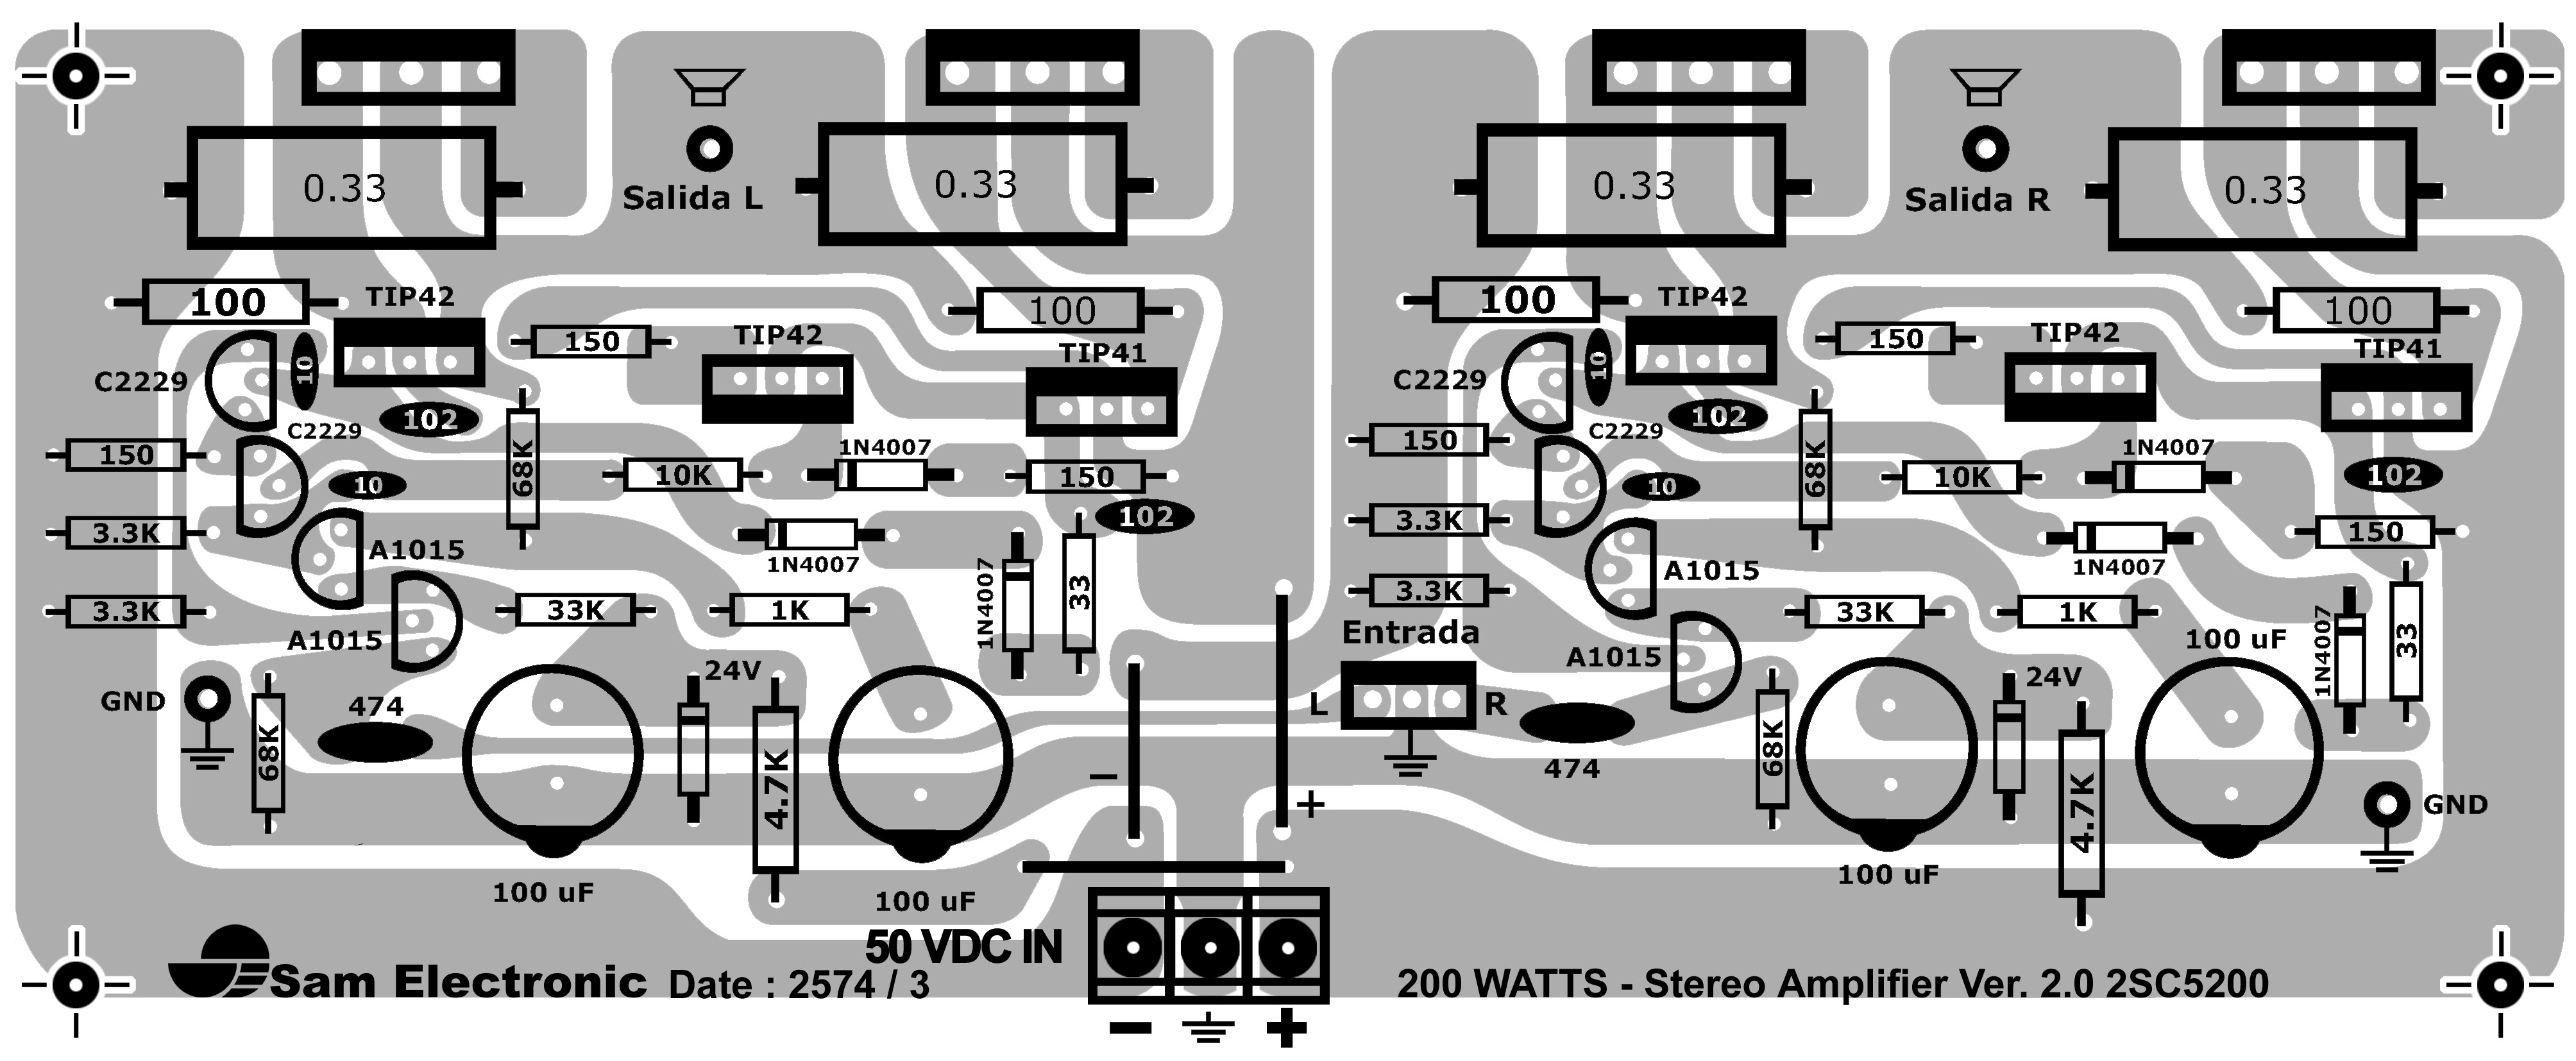 Pcb Amplifier - Circuit Diagram Images